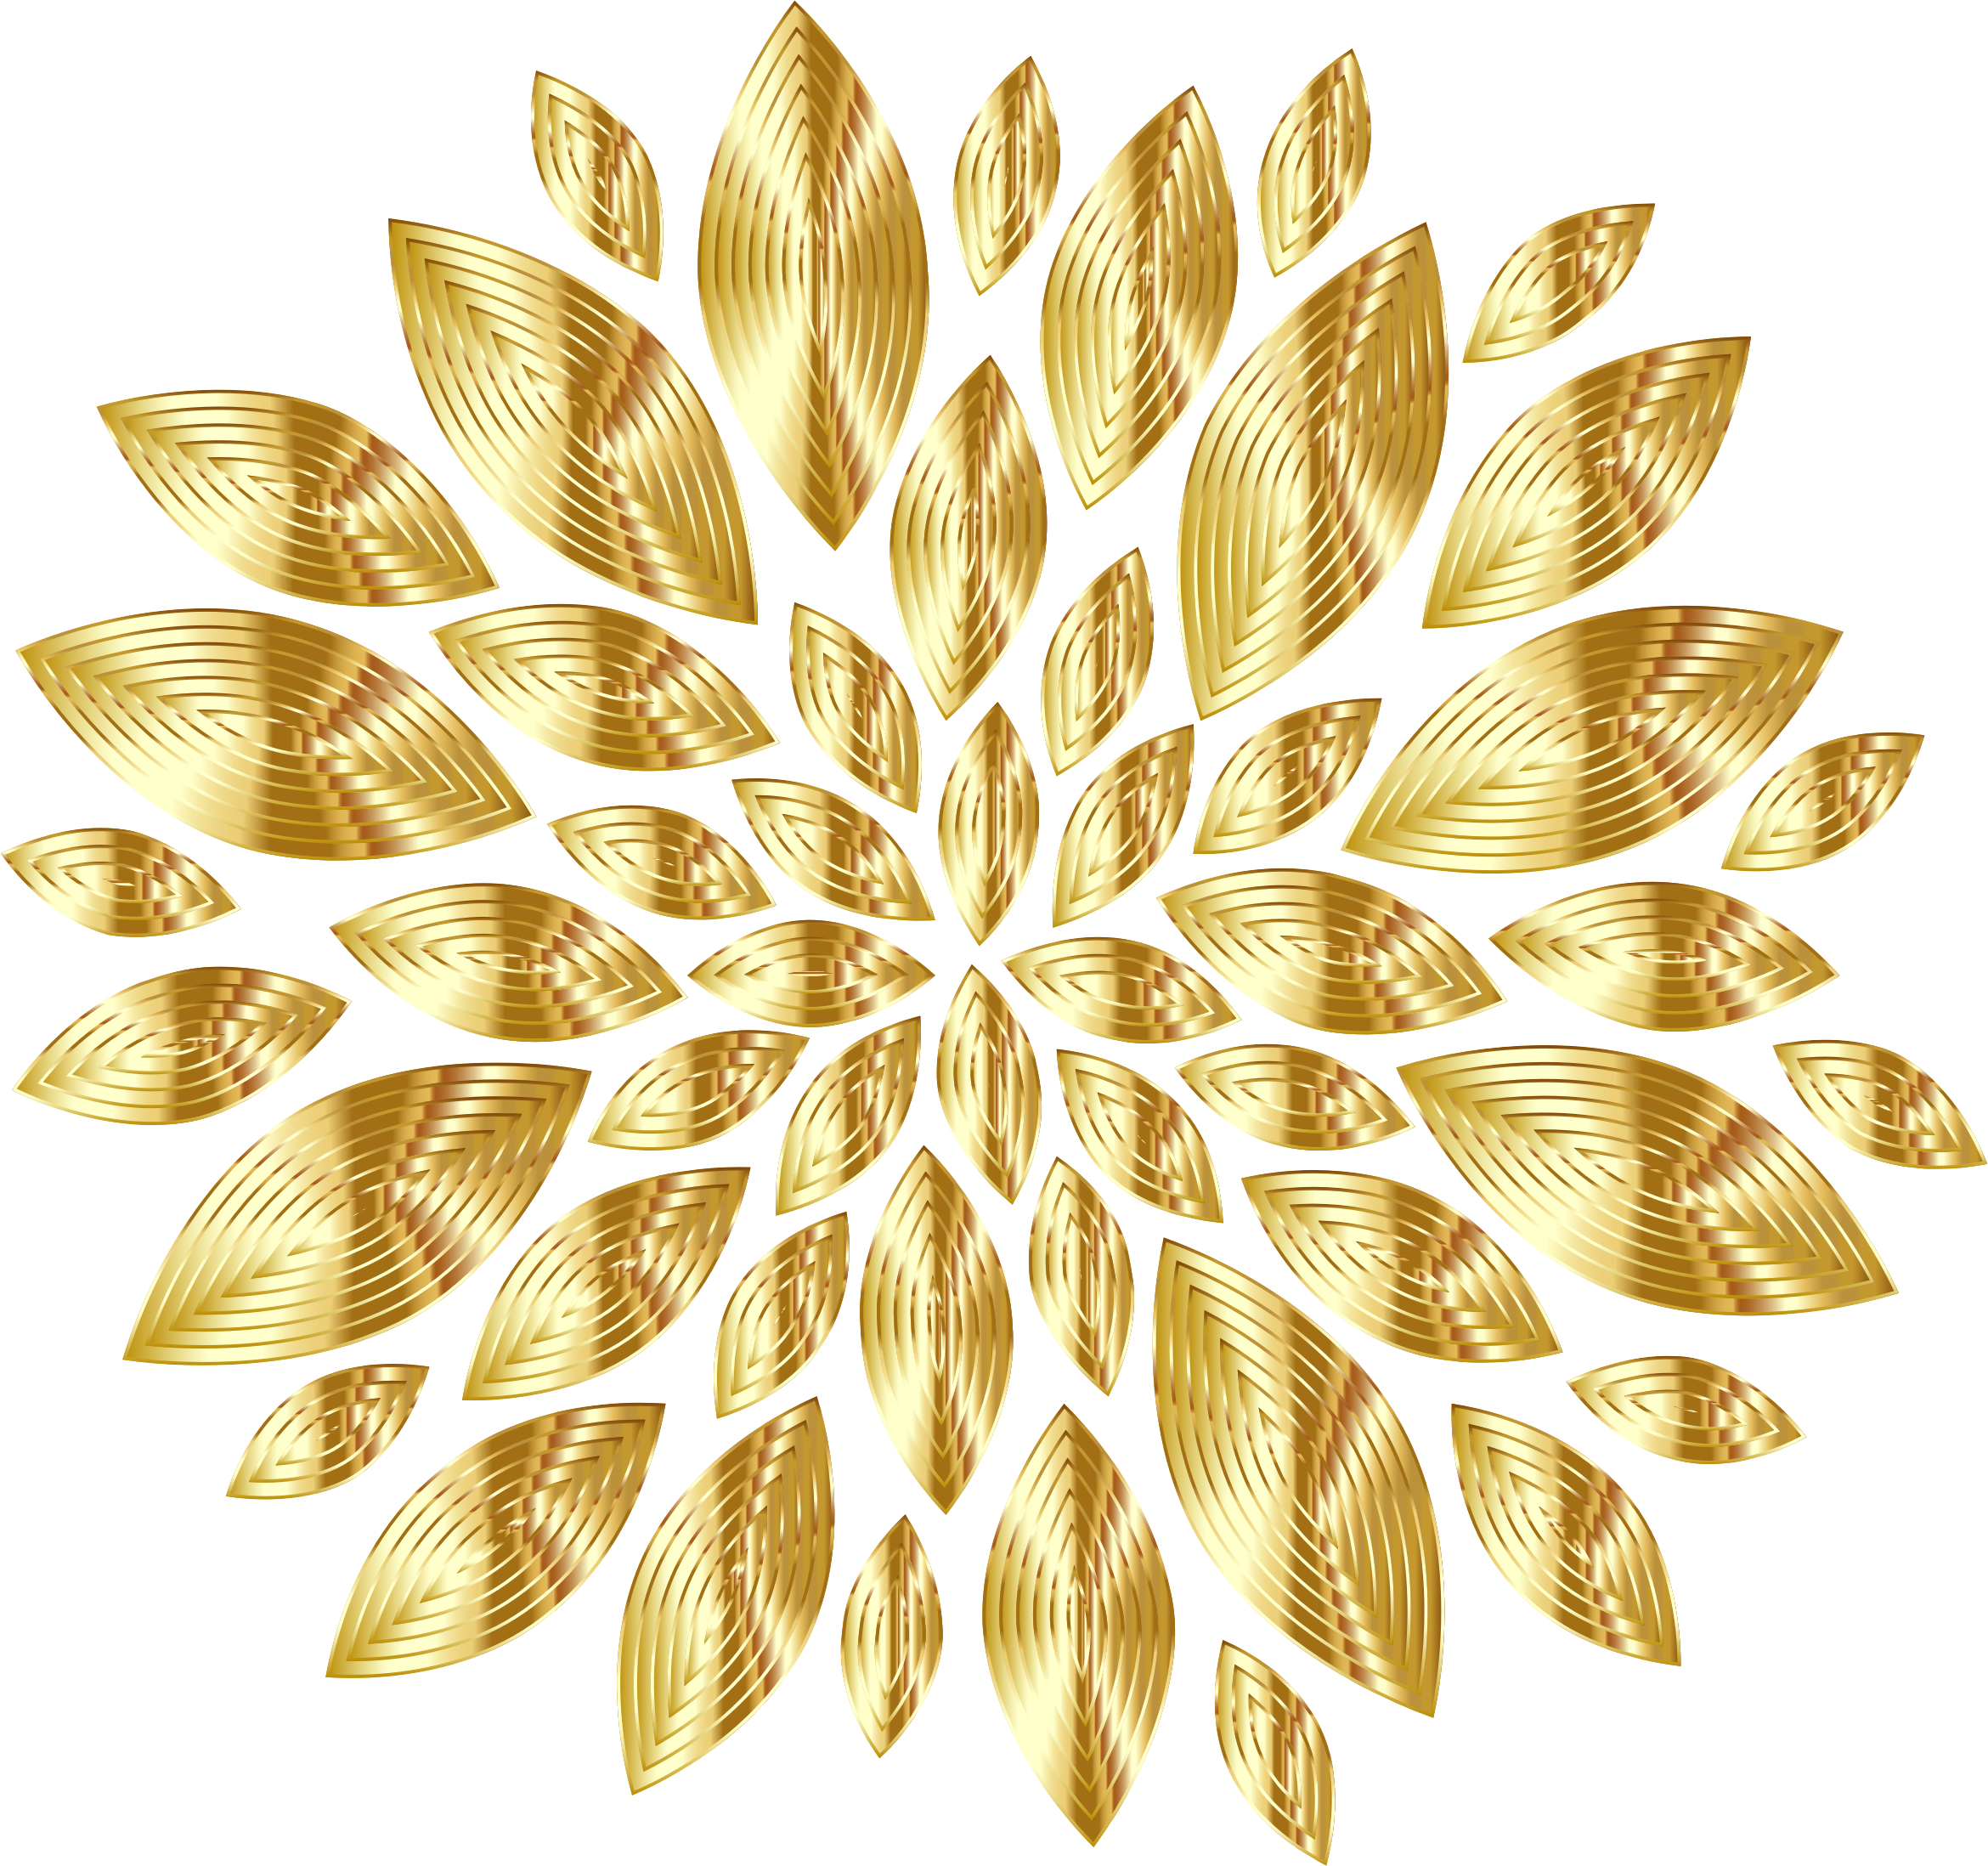 3 petal flower clipart picture black and white stock Clipart - Gold Flower Petals Variation 3 picture black and white stock